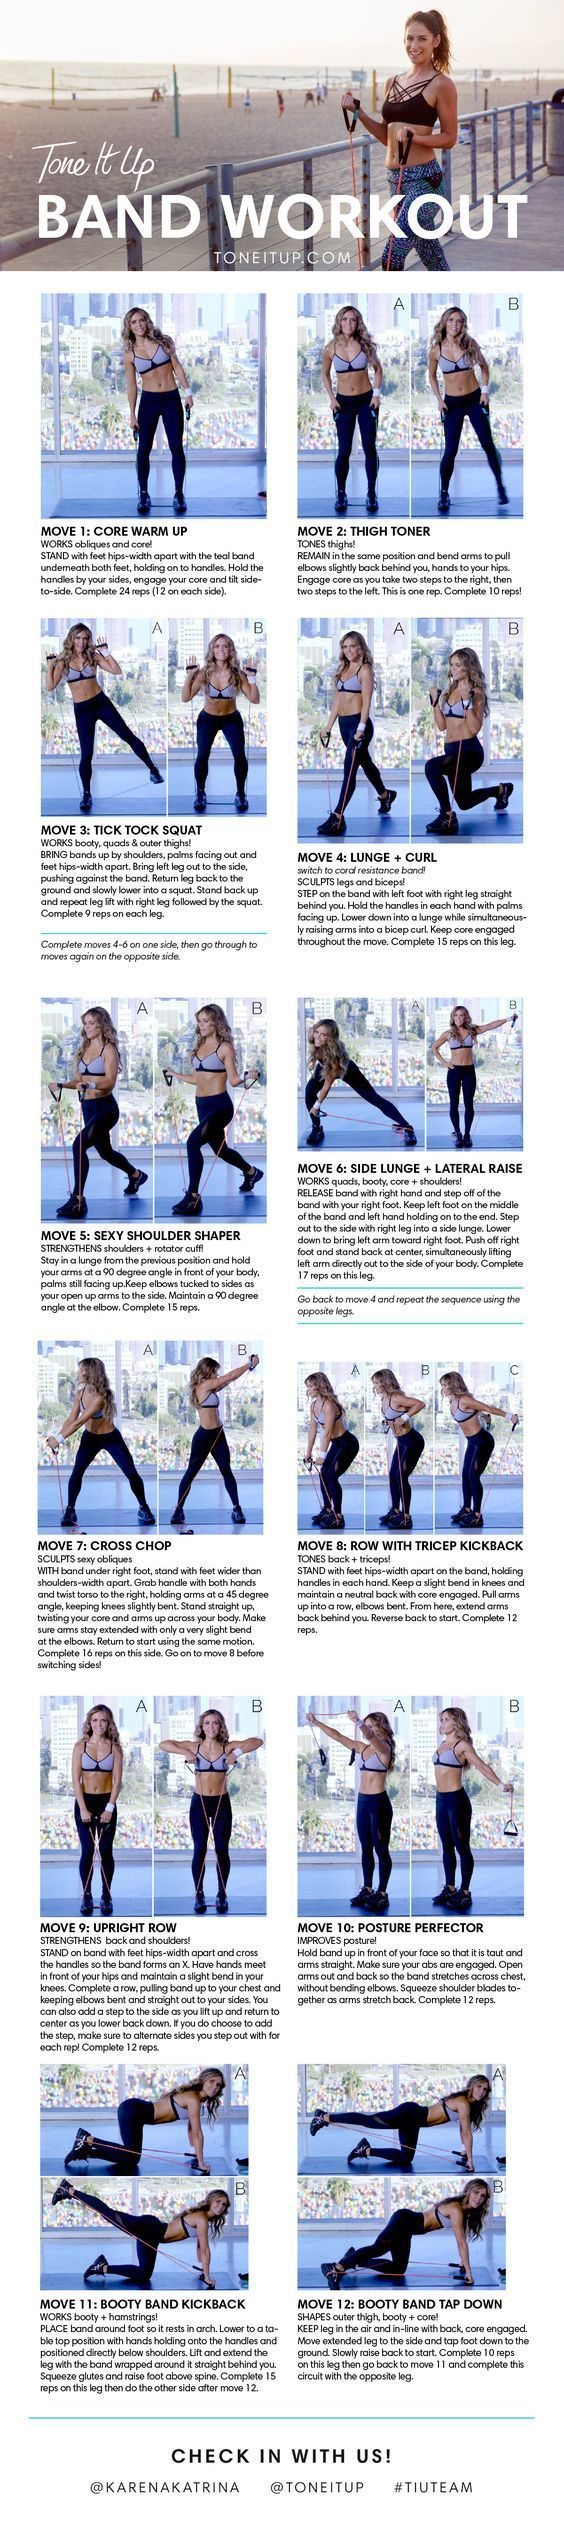 Burning fat around the waist image 7